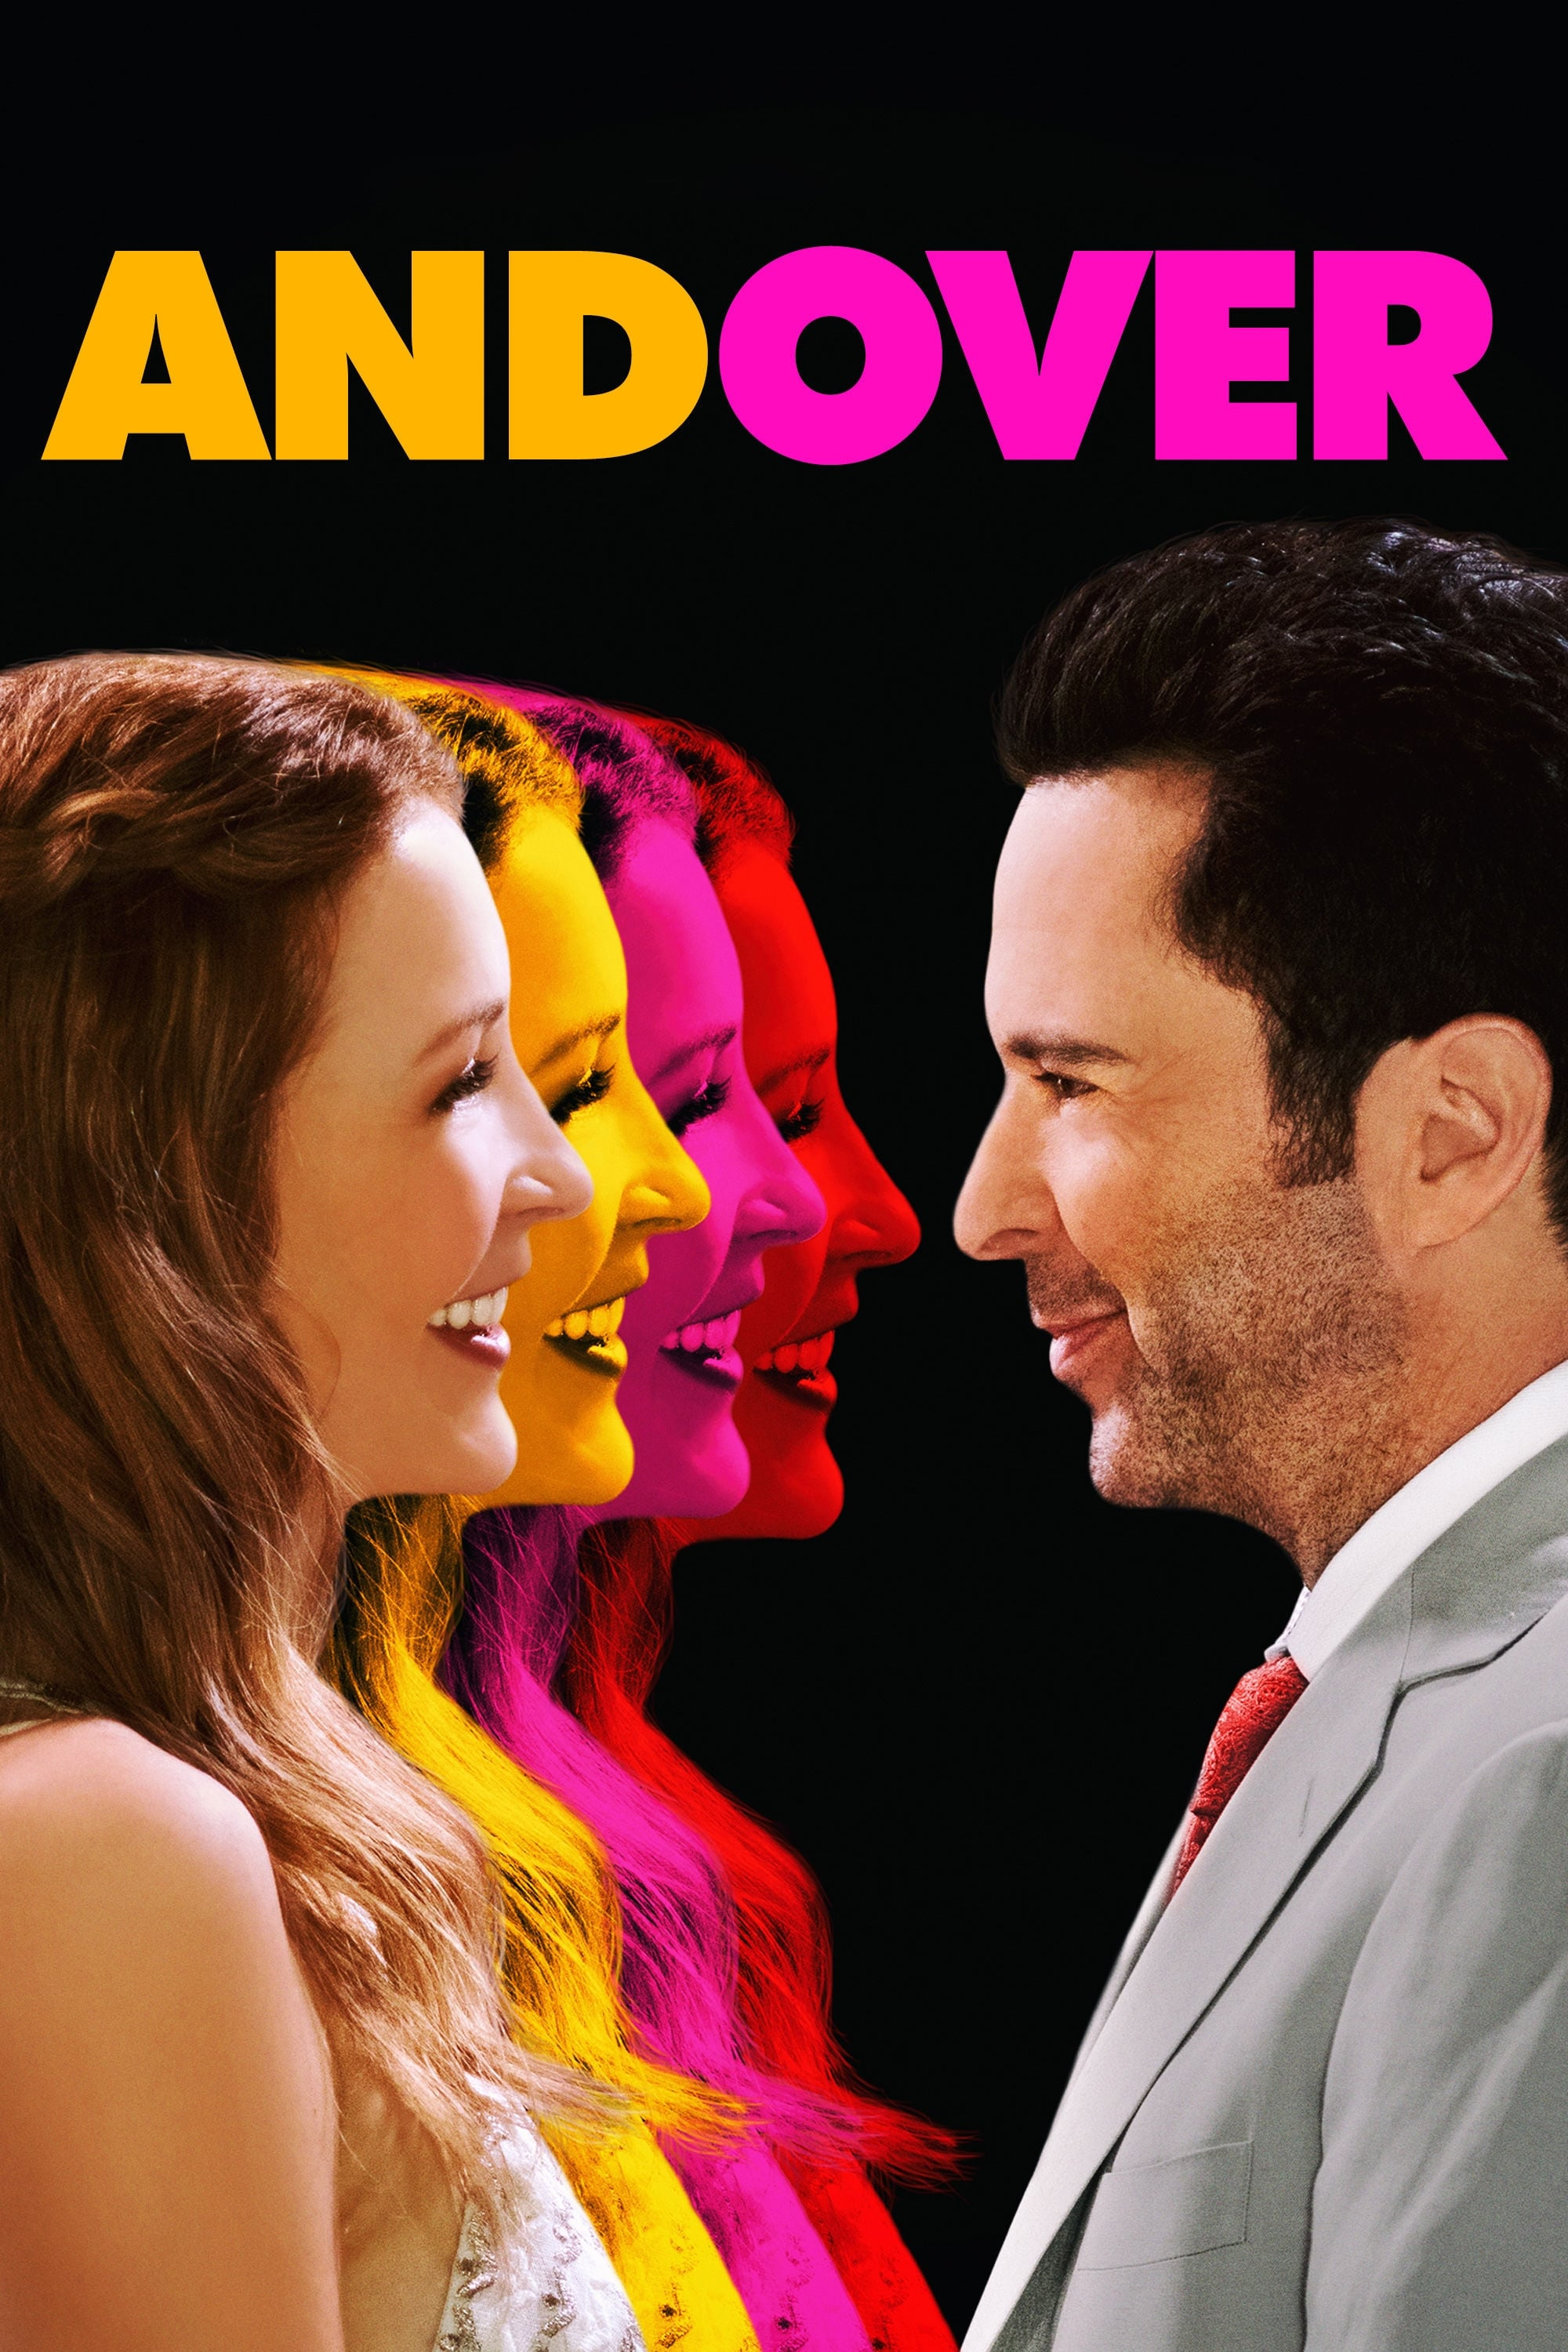 New Hindi Movei 2018 2019 Bolliwood: Watch Andover 2018 Online Free